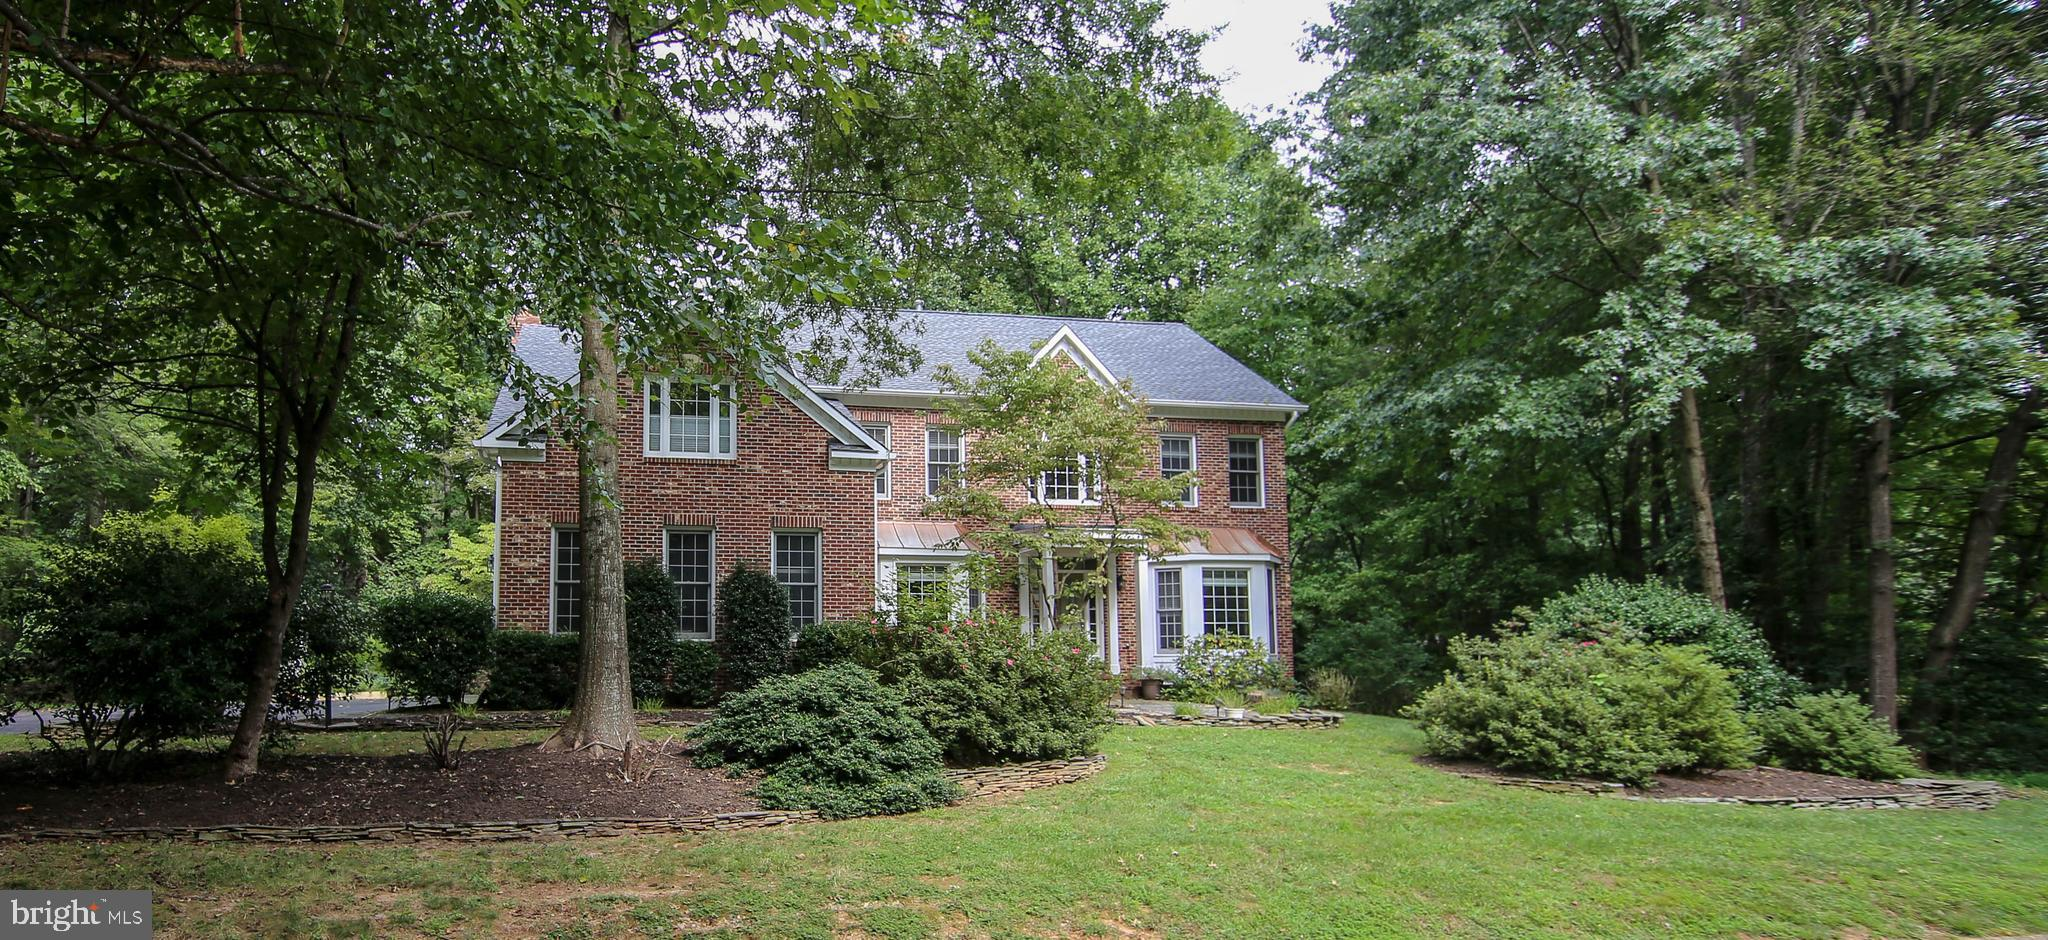 3103 PINE OAKS WAY, OAK HILL, VA 20171